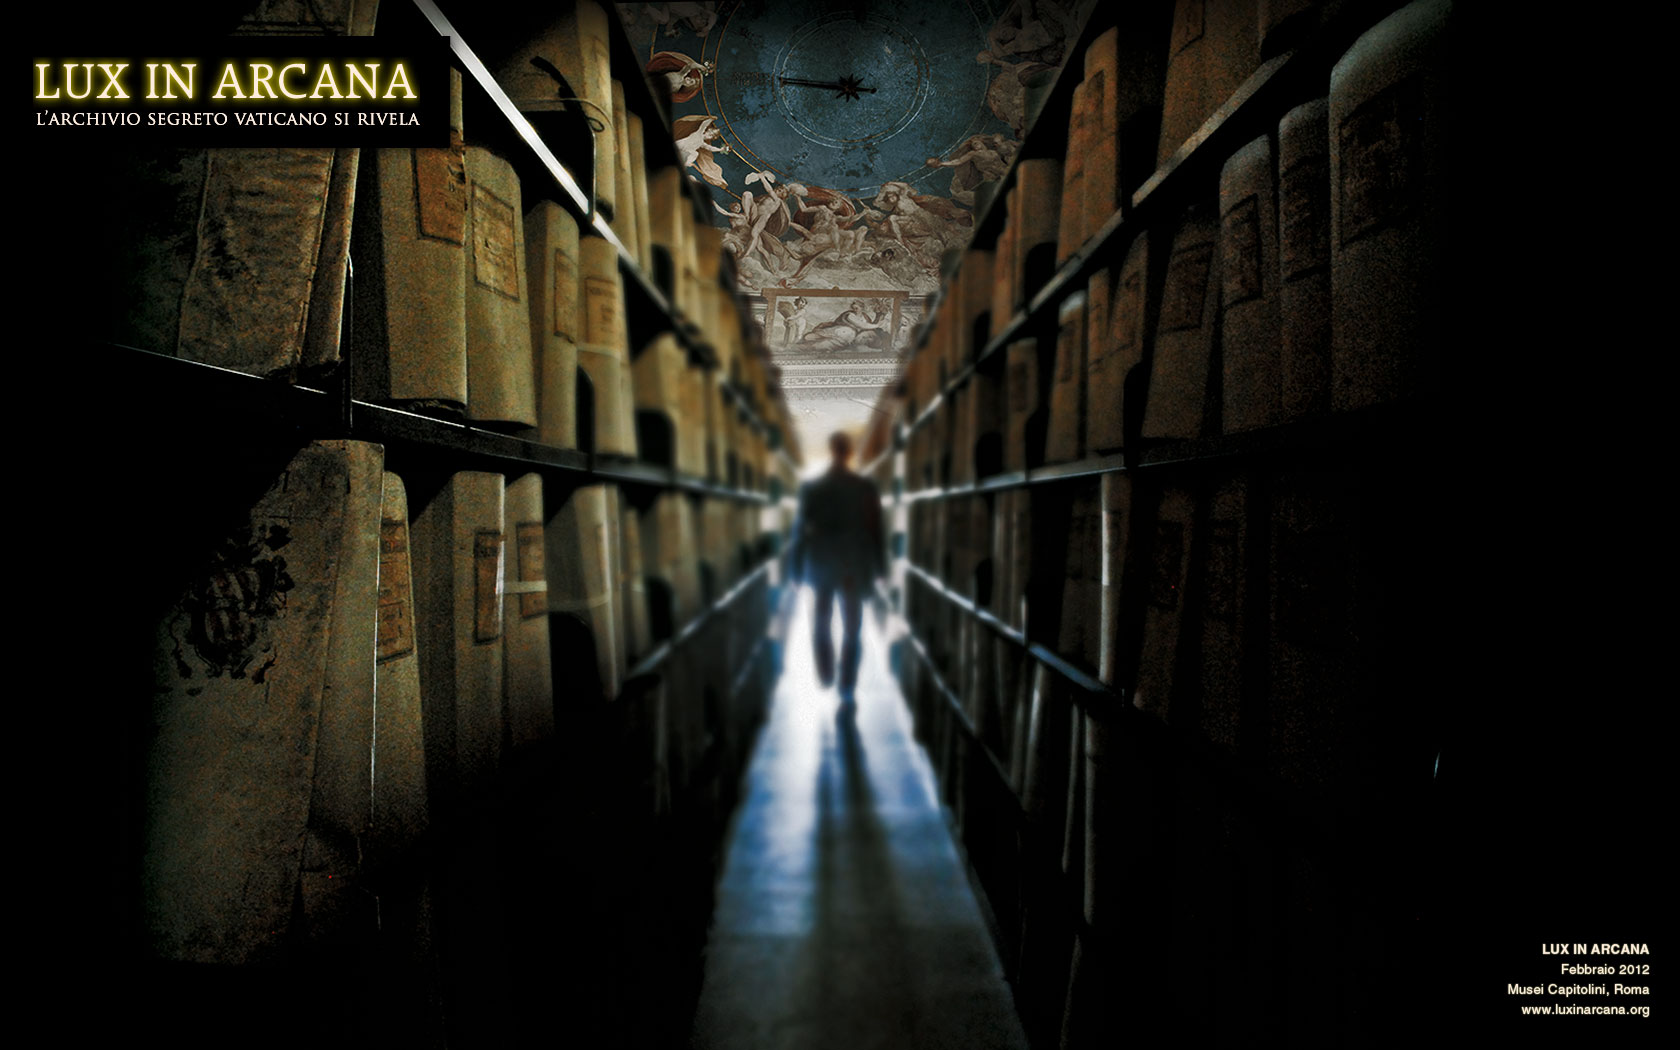 Lux In Arcana: the Vatican Secret Archives revealed